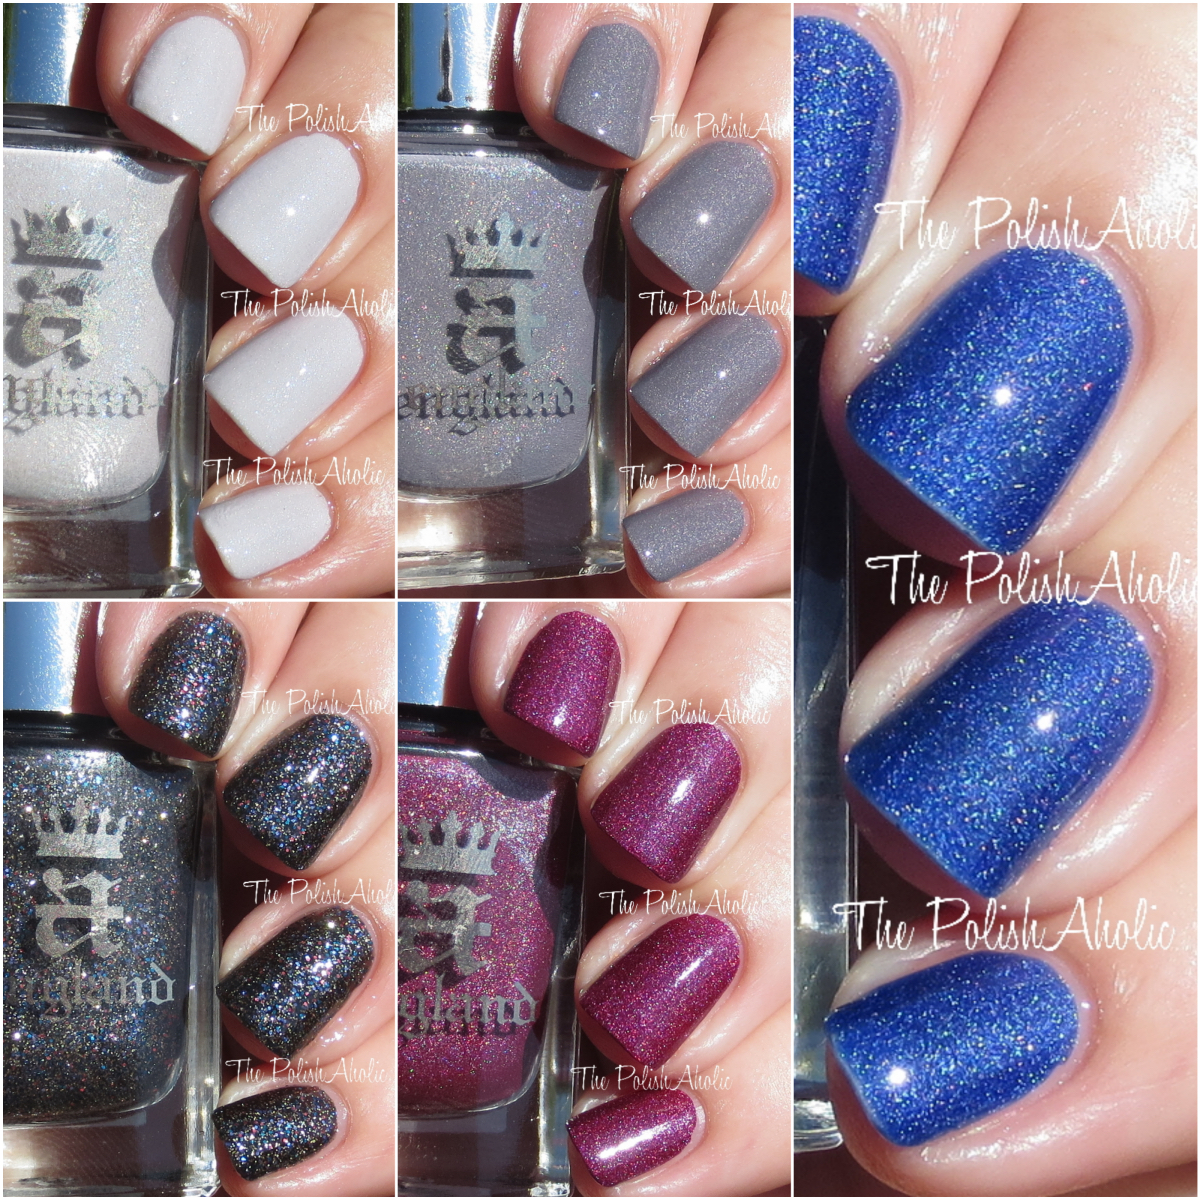 The PolishAholic: A England Emily Bronte Collection Swatches & Review